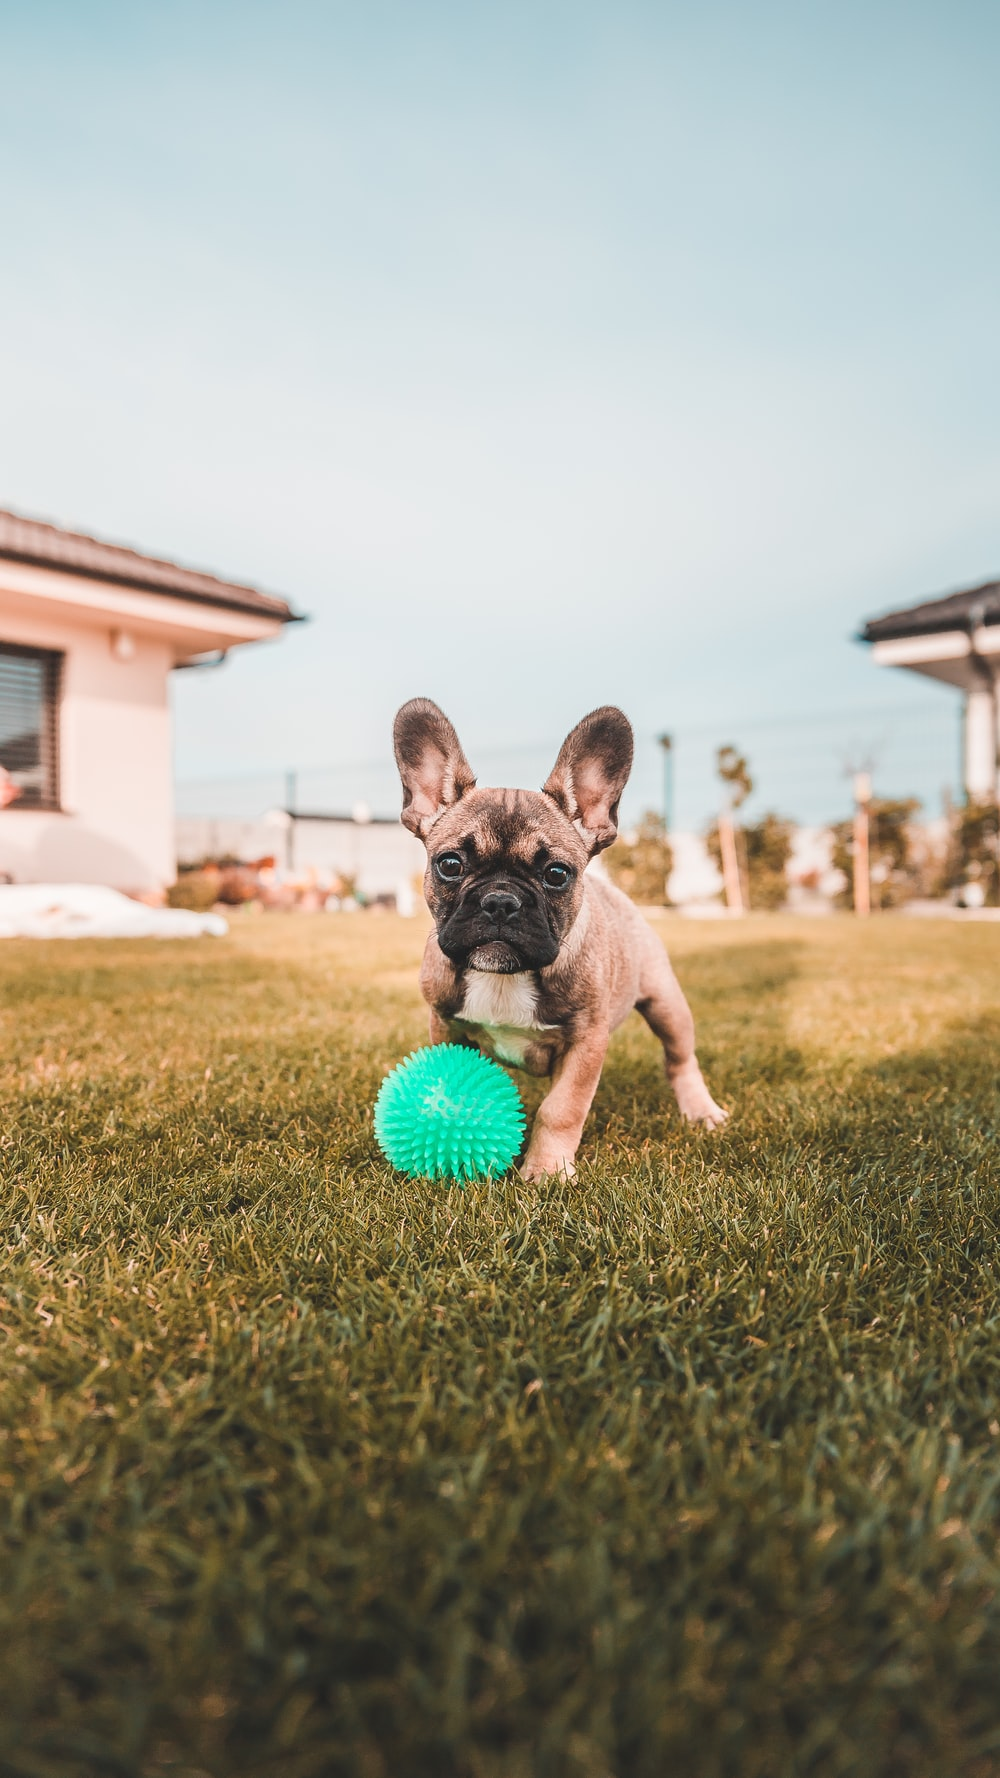 brown and black french bulldog puppy playing ball on green grass field during daytime